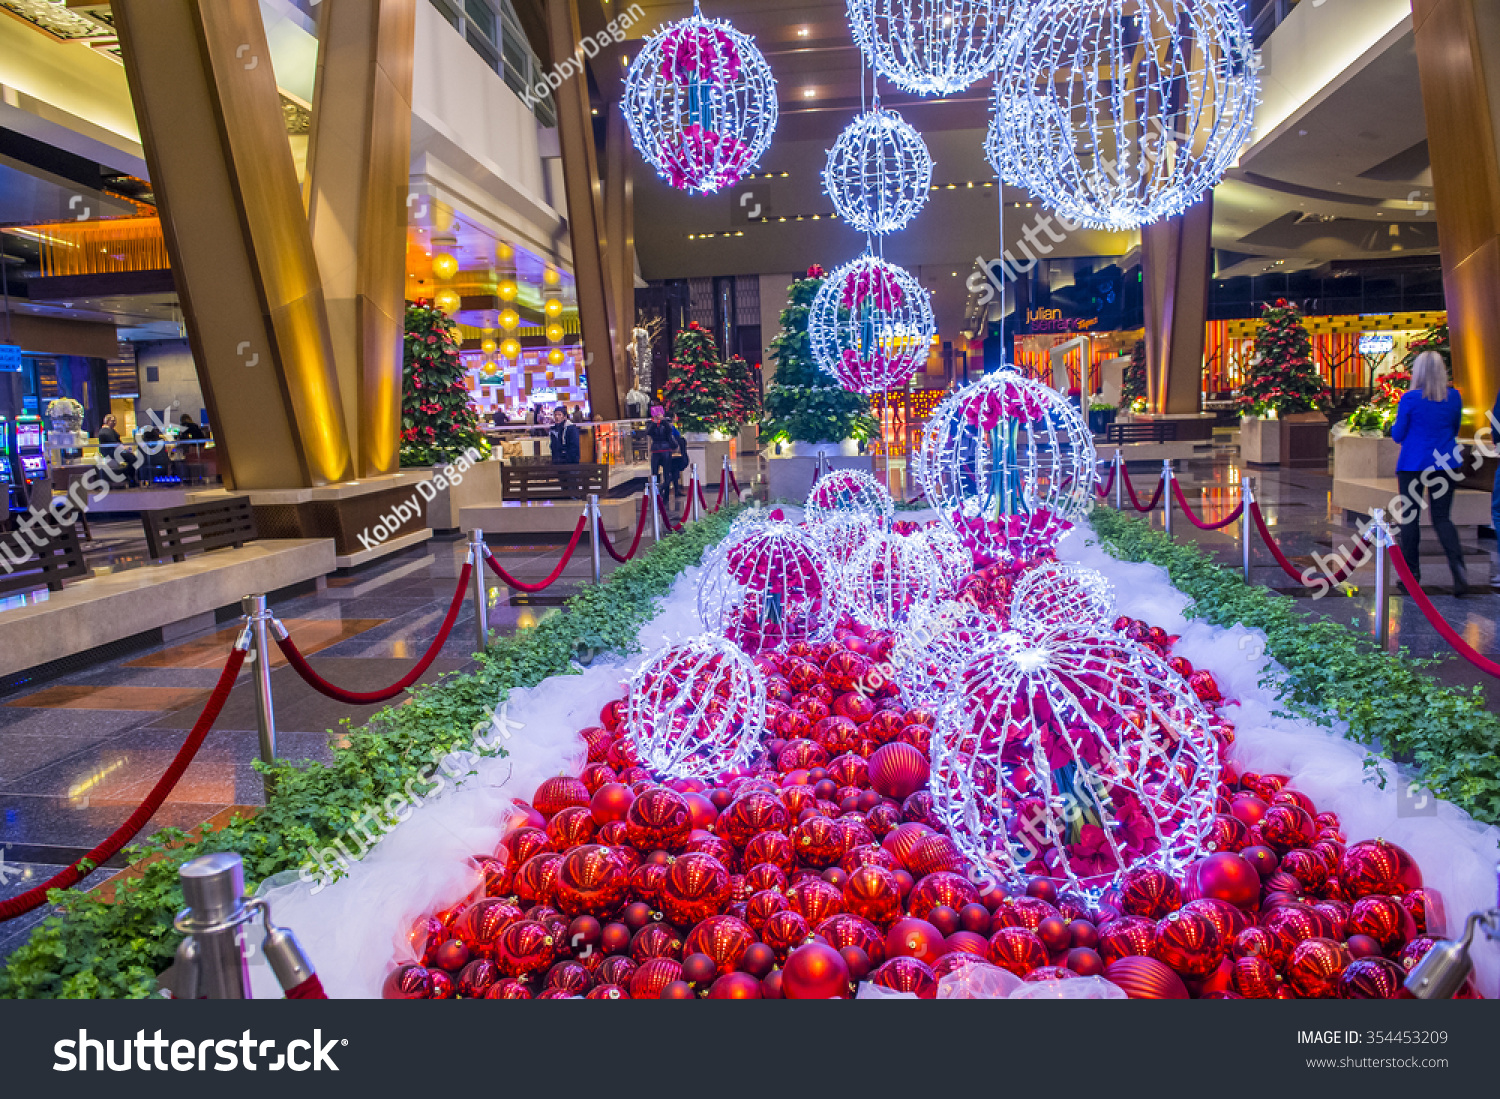 When do they start decorating for christmas in las vegas for When does las vegas decorate for christmas